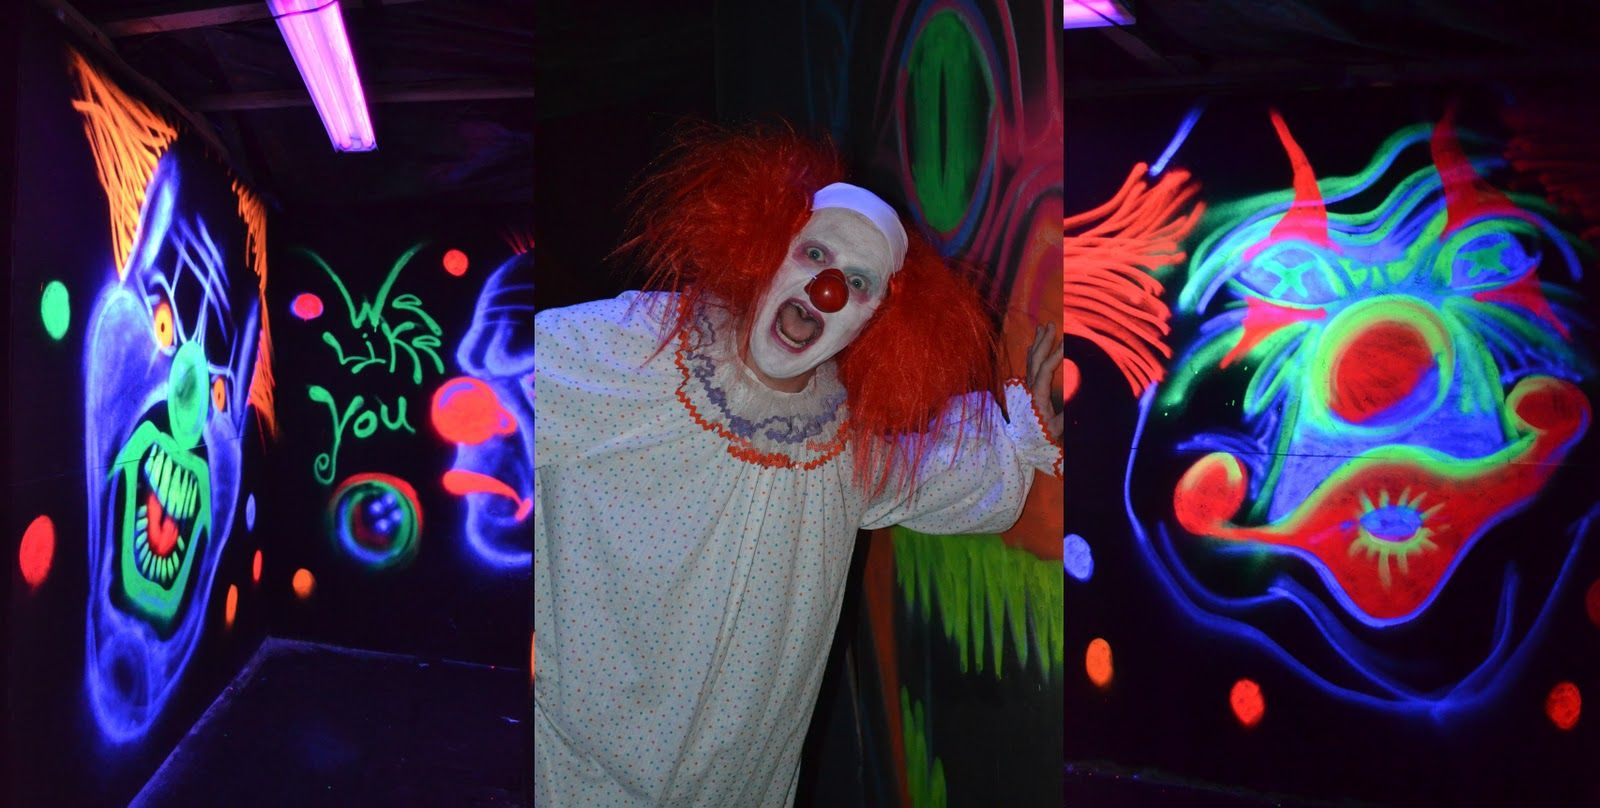 Haunted House Room Ideas | Third room was the clown room.